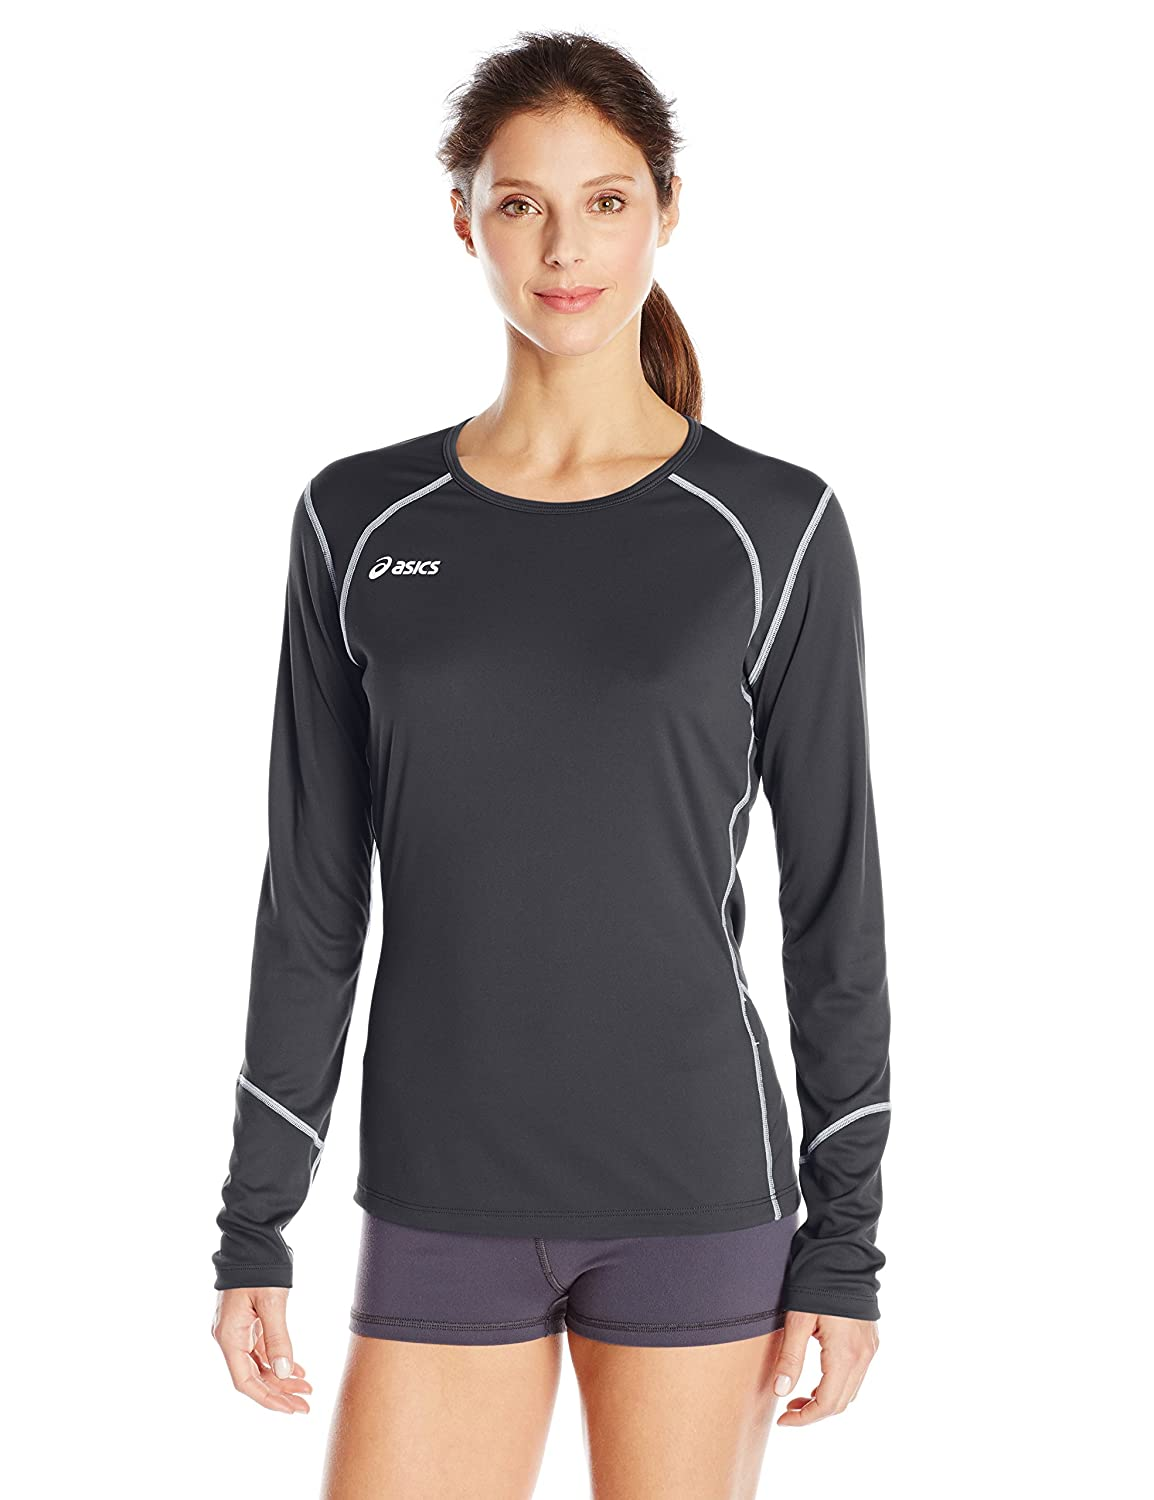 ASICS Damen Volleycross Long Sleeve Jersey, Damen, Volleycross™ Long Sleeve B013IWVN70 Shirts & Blausen Schönes Design